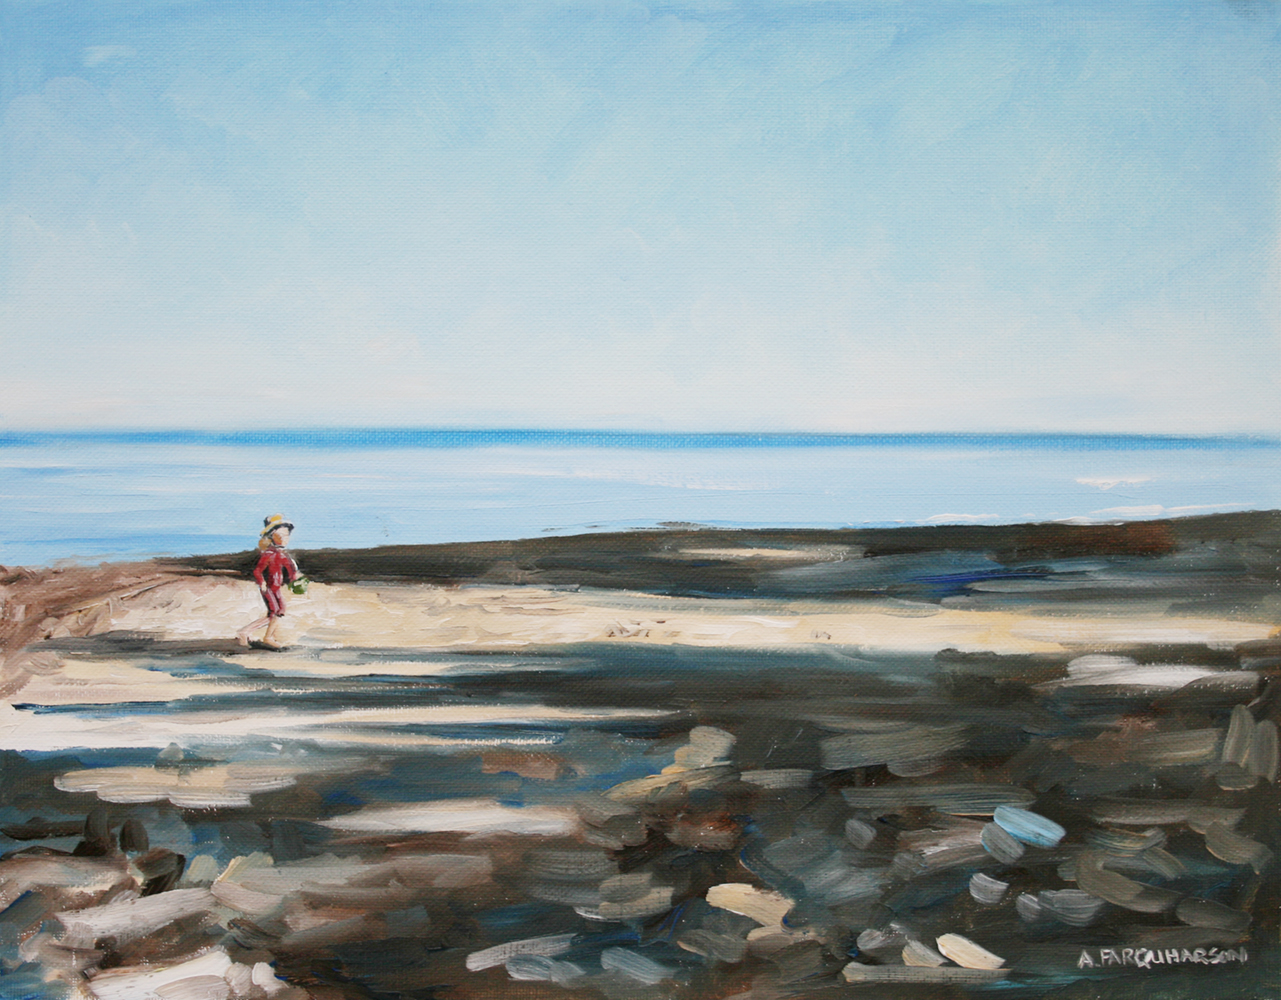 Early Morning Shadows and Pails of Water by Amanda Farquharson 11 x 14 inches, oil on canvas